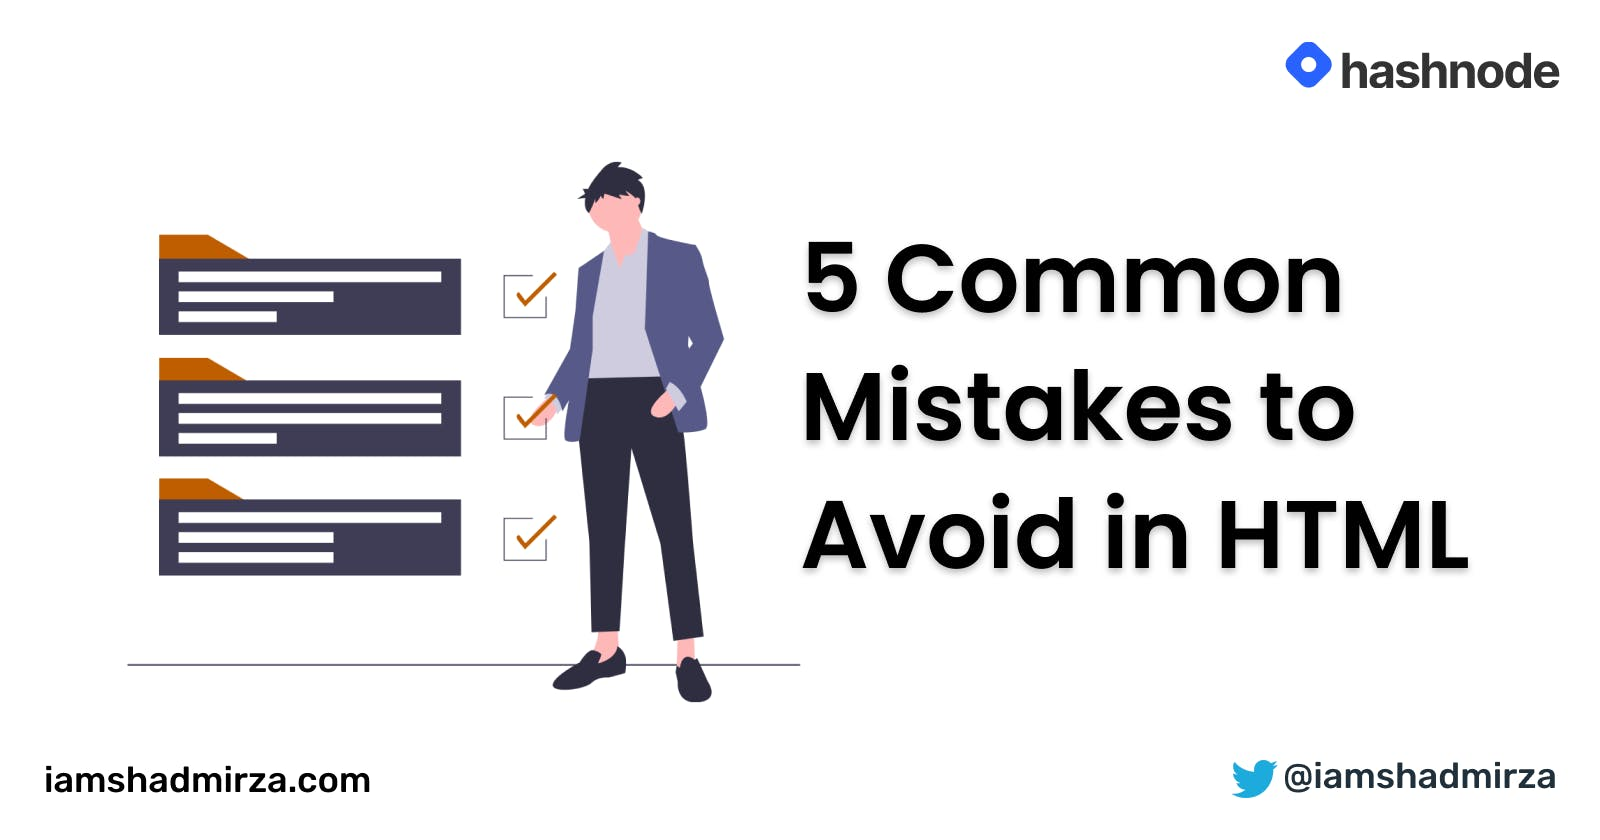 5 Common Mistakes to Avoid in HTML